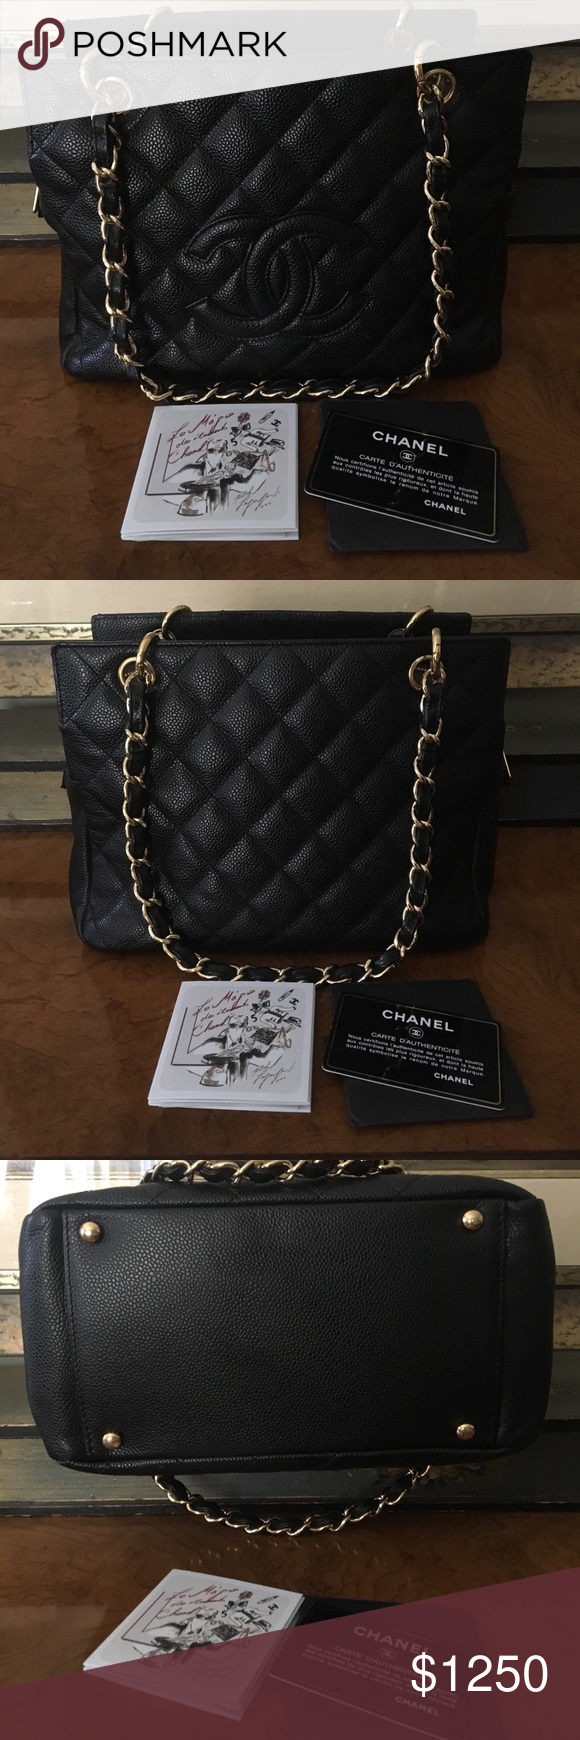 3a0c4c6182efd5 Chanel Petite Timeless Tote (PTT) 100% authentic Chanel. Discontinued Petite  Timeless Tote